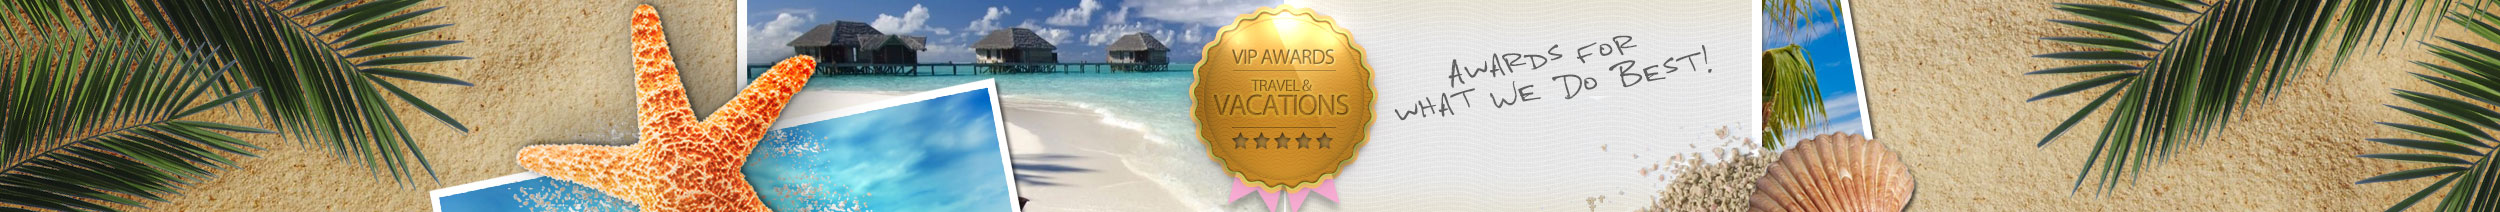 Travel Weekly Awards- 2008